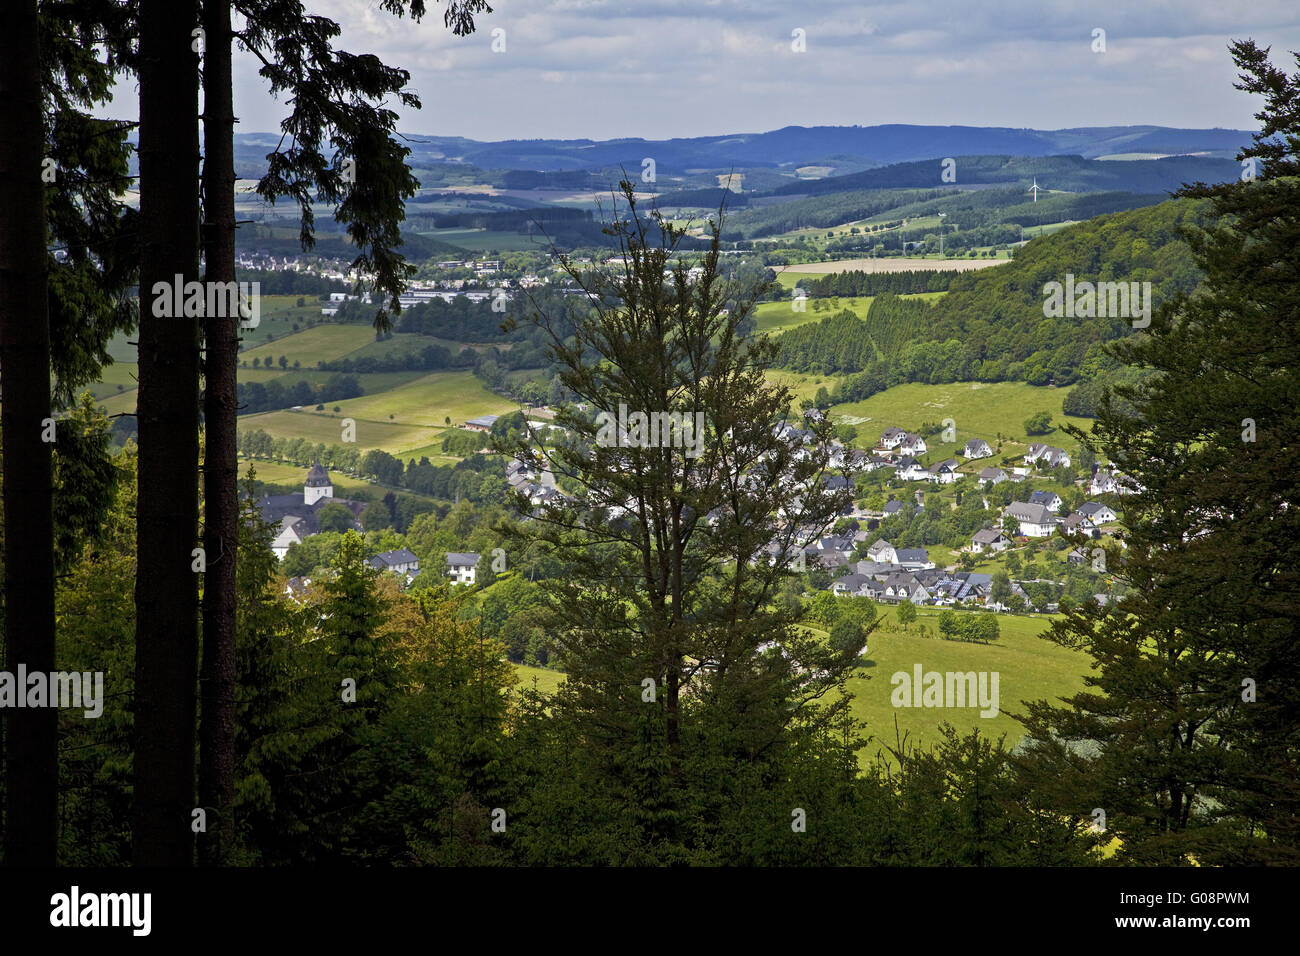 View of Schmallenberg in the Sauerland, Germany. - Stock Image